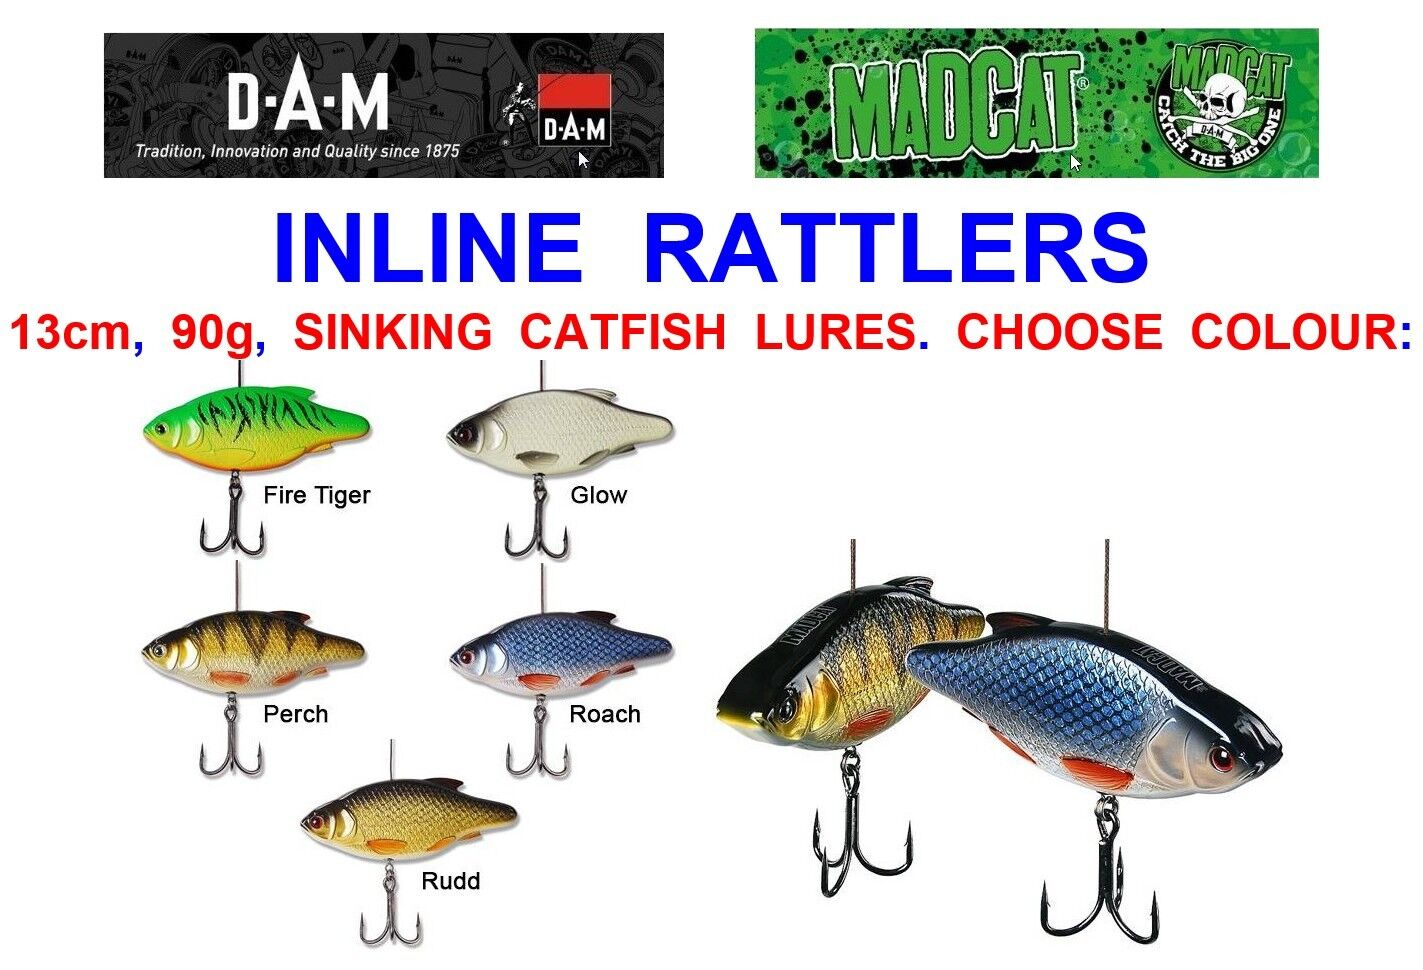 DAM MAD CAT INLINE RATTLERS BOAT COARSE FISHING CATFISH PLUGS SPINNING ROD LURES